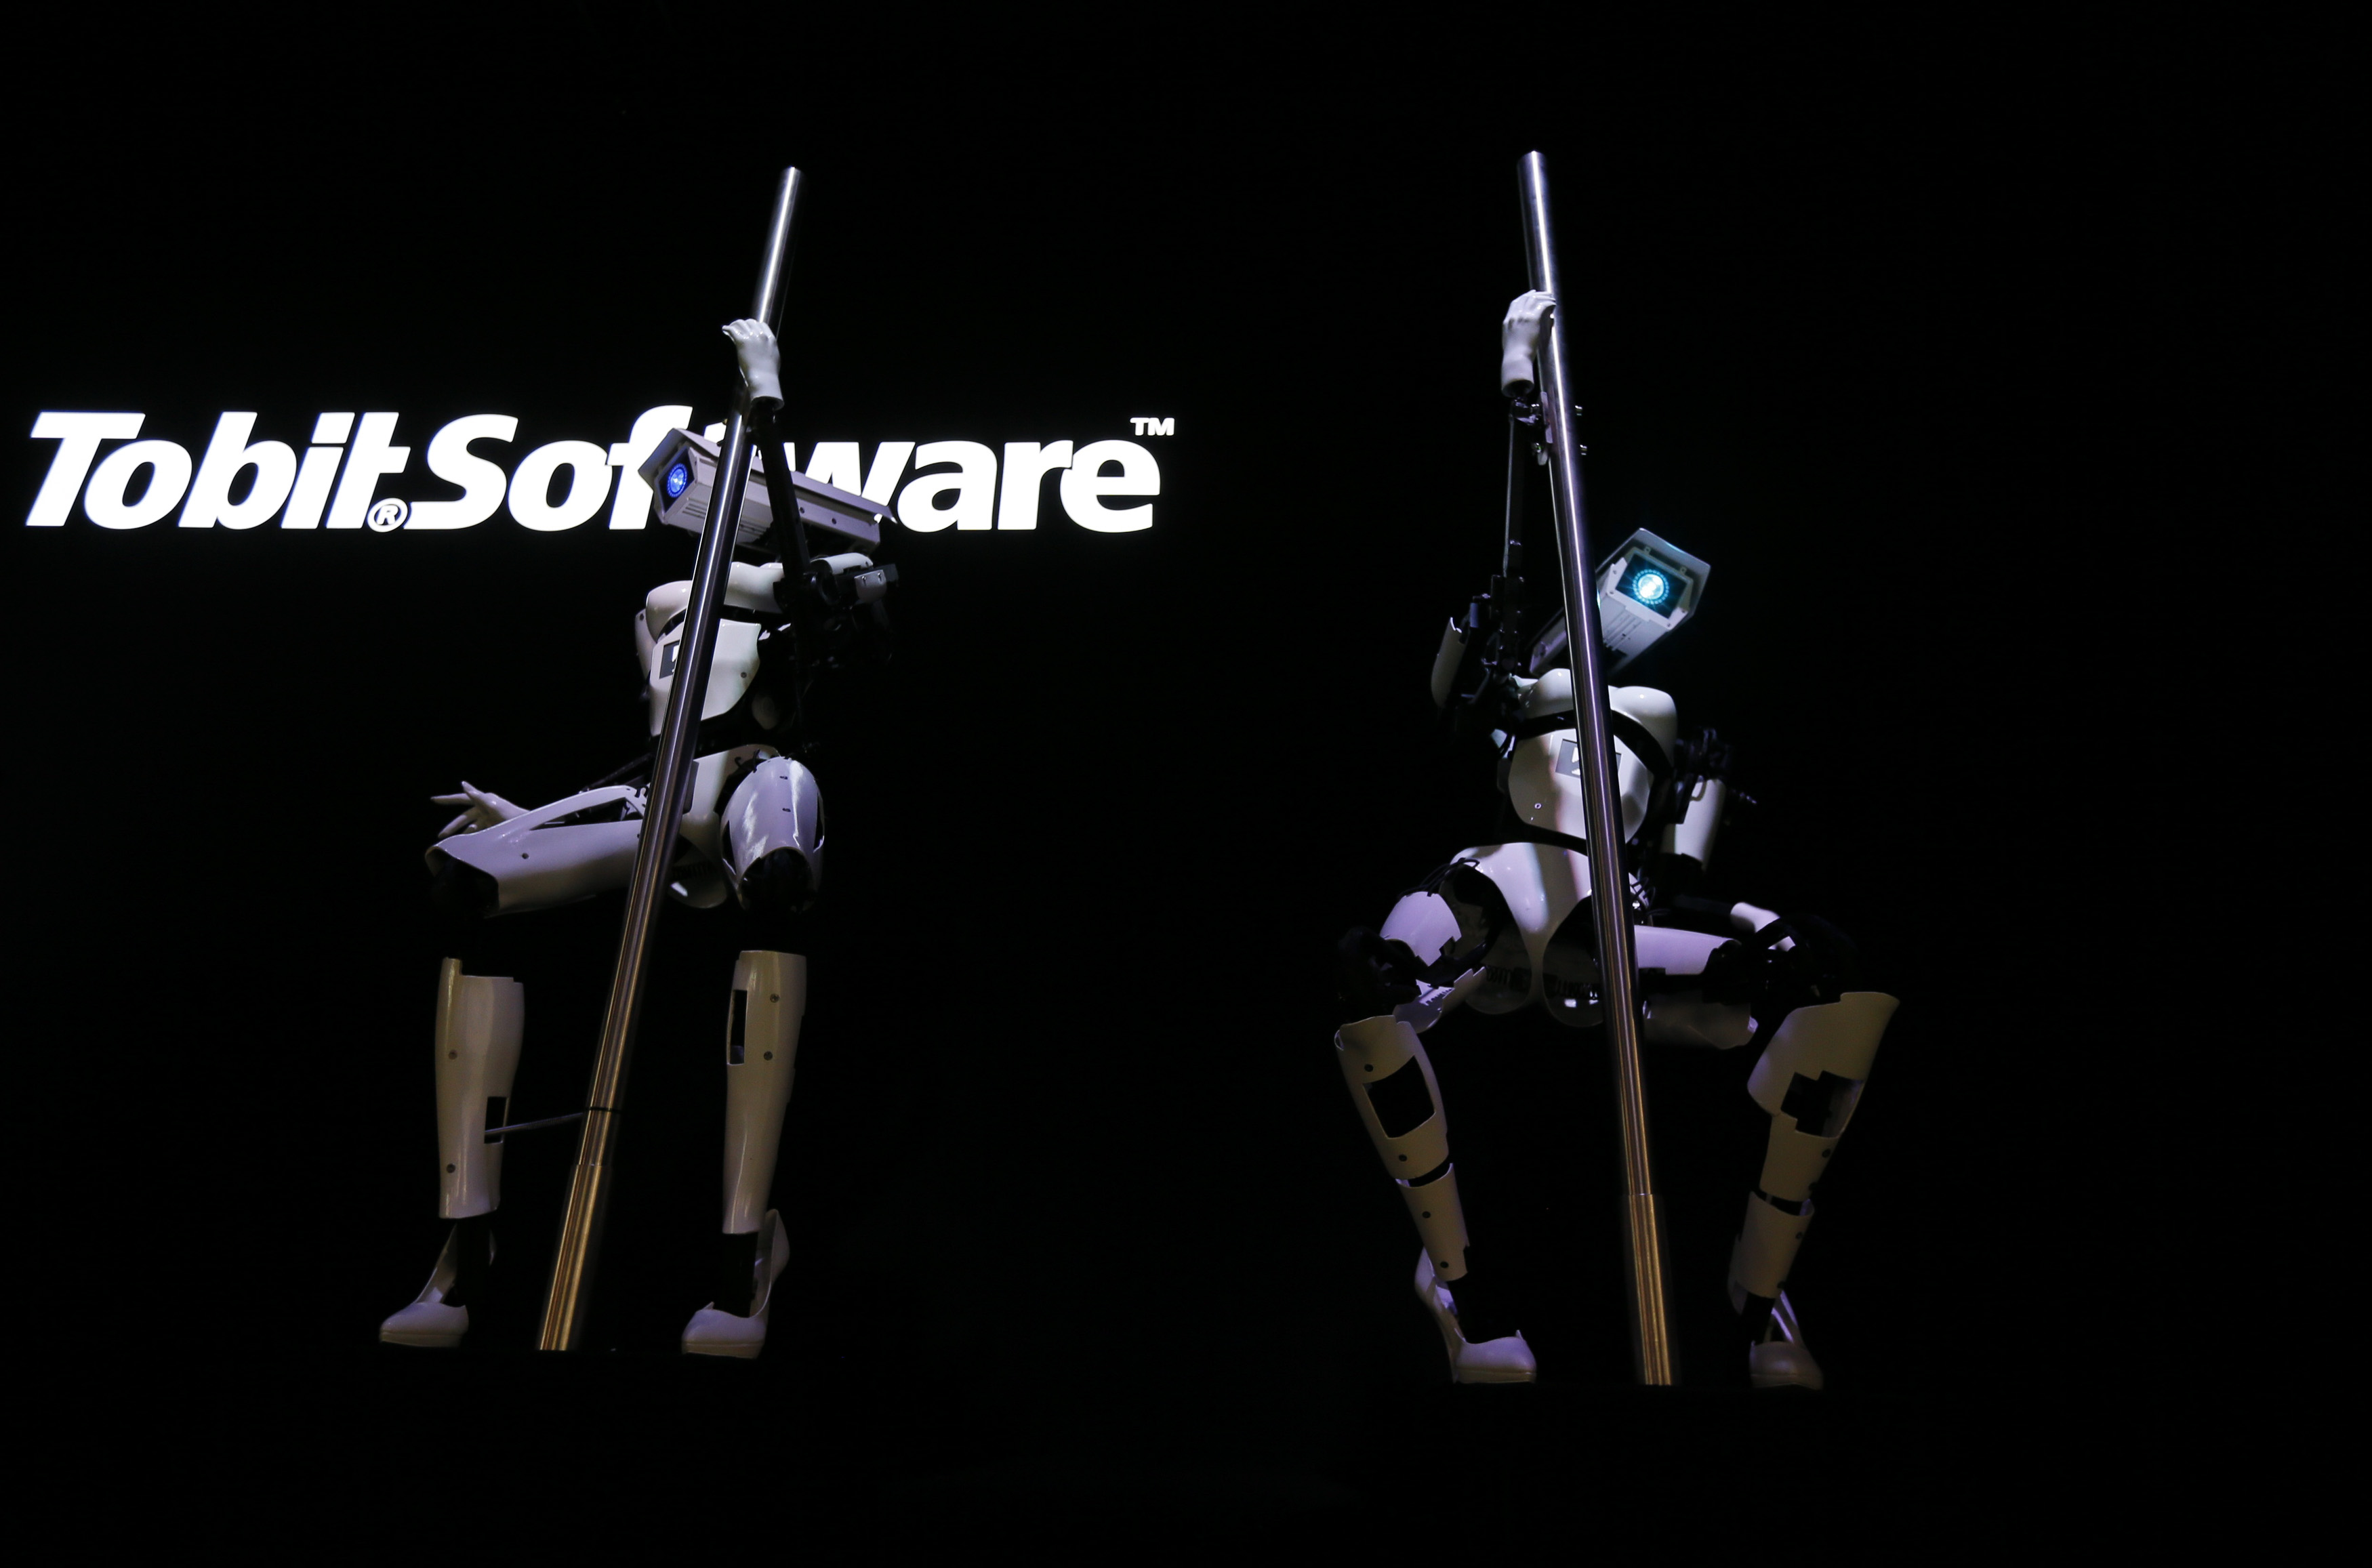 """""""Female"""" robots Tessy and Tess wear white stiletto heels and pole dance during a demonstration at the Tobit Software stand at the 2014 CeBIT trade fair in Hanover, Germany."""